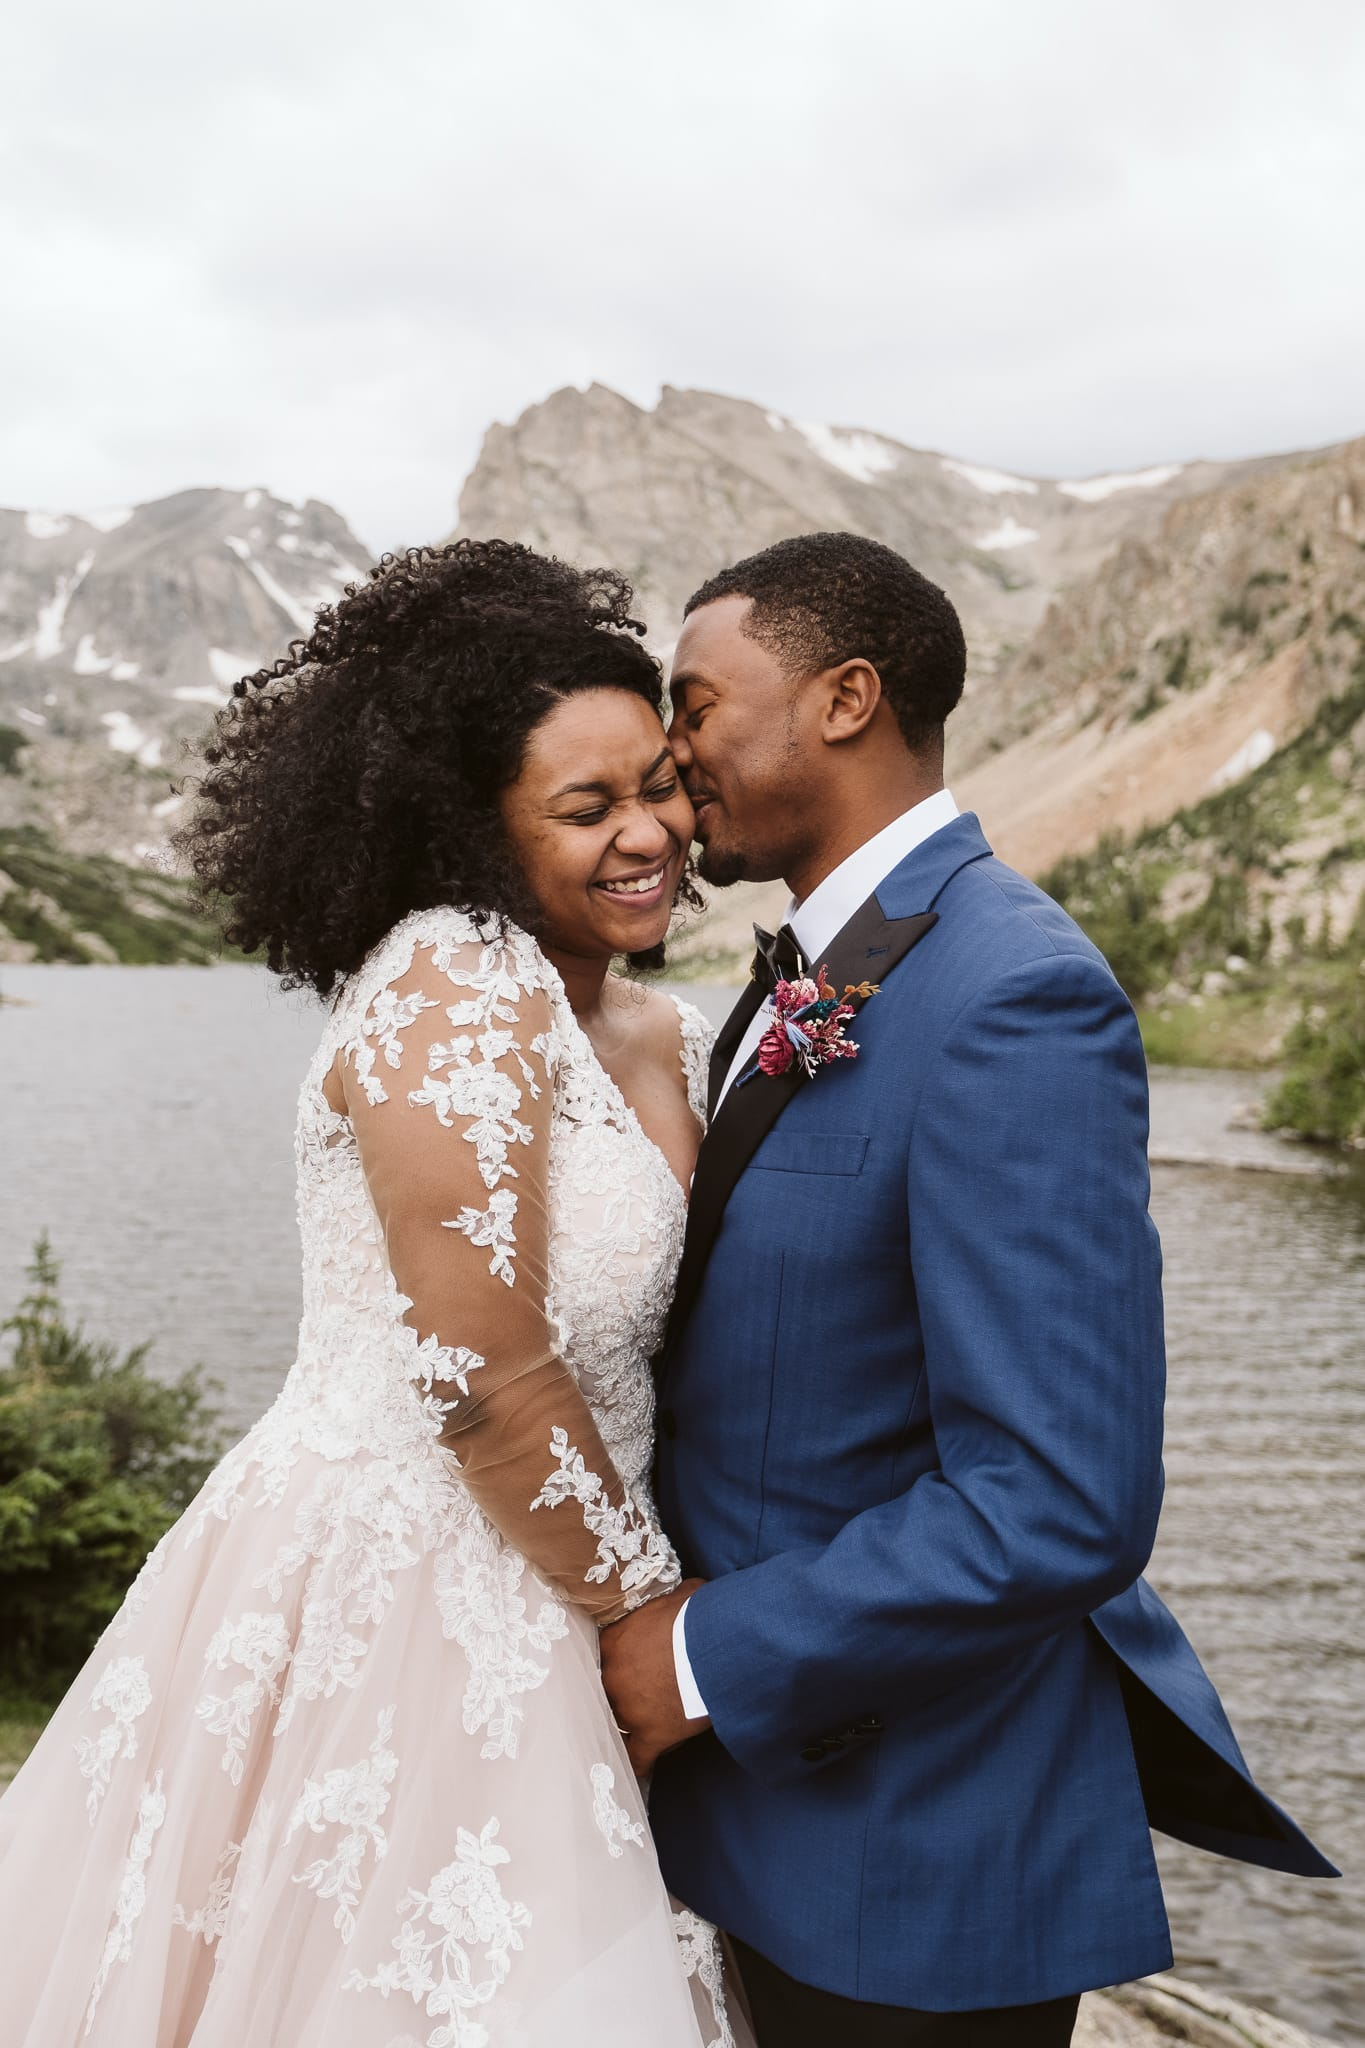 Hiking elopement in the Colorado mountains